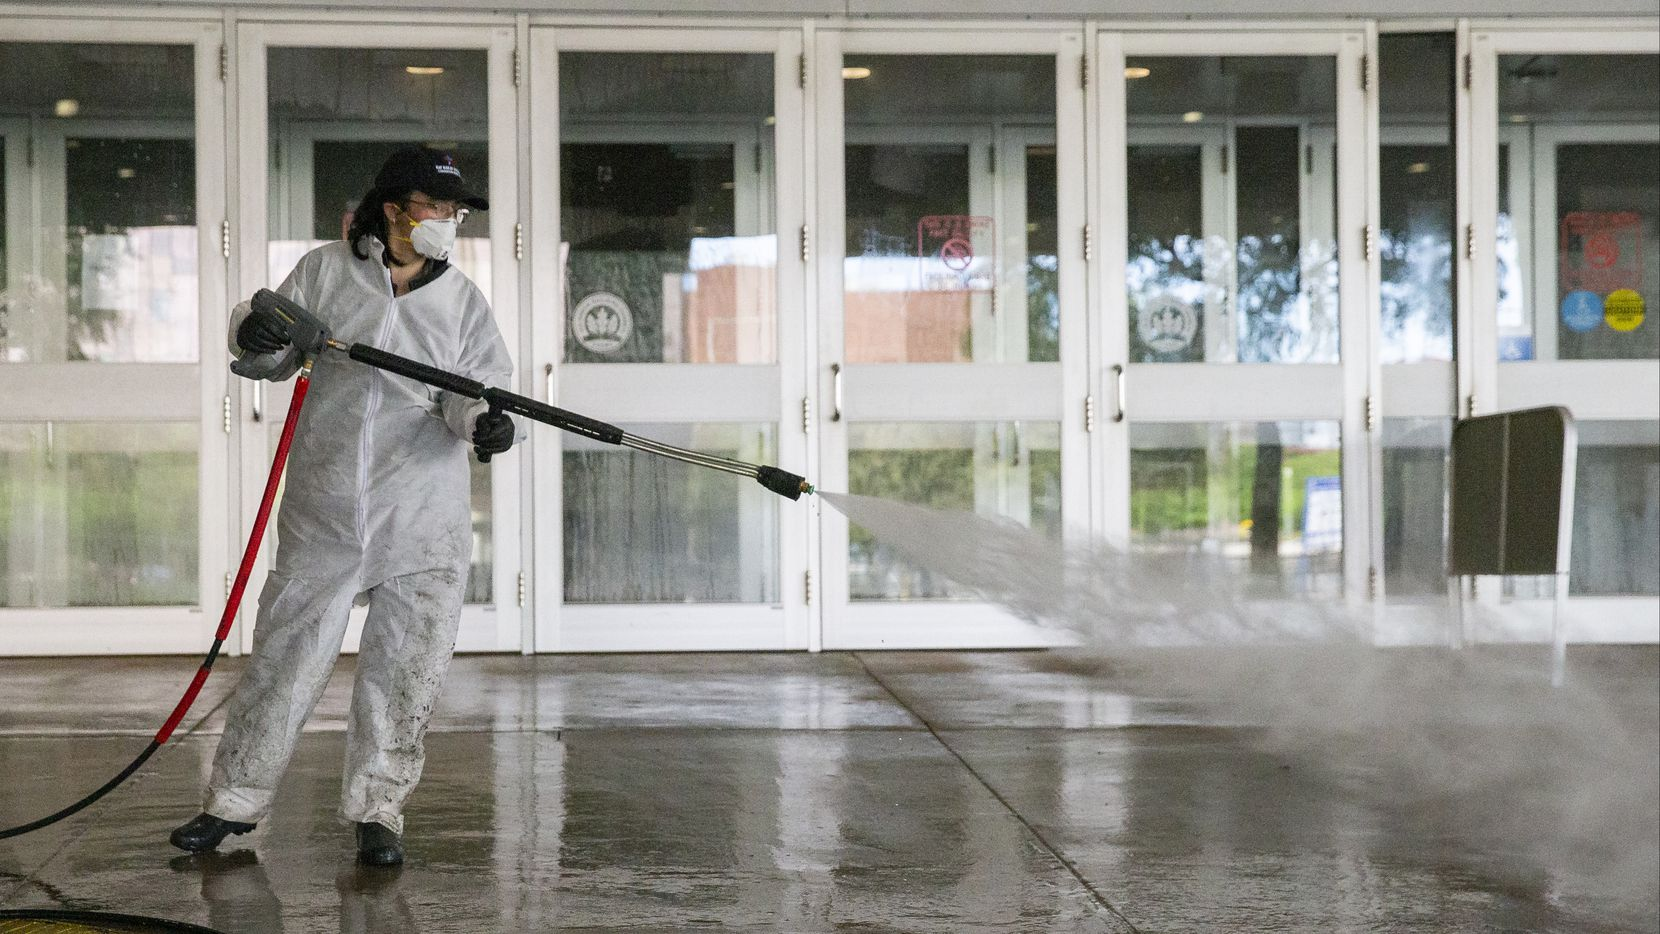 A worker power washes the entrance to Area C at the Kay Bailey Hutchison Convention Center in downtown Dallas on March 29, 2020. Texas Gov. Greg Abbott announced on March 29, 2020, that the US Army Corps of  Engineers and the state are putting up a 250-bed field hospital at the center downtown.  (Juan Figueroa/ The Dallas Morning News)